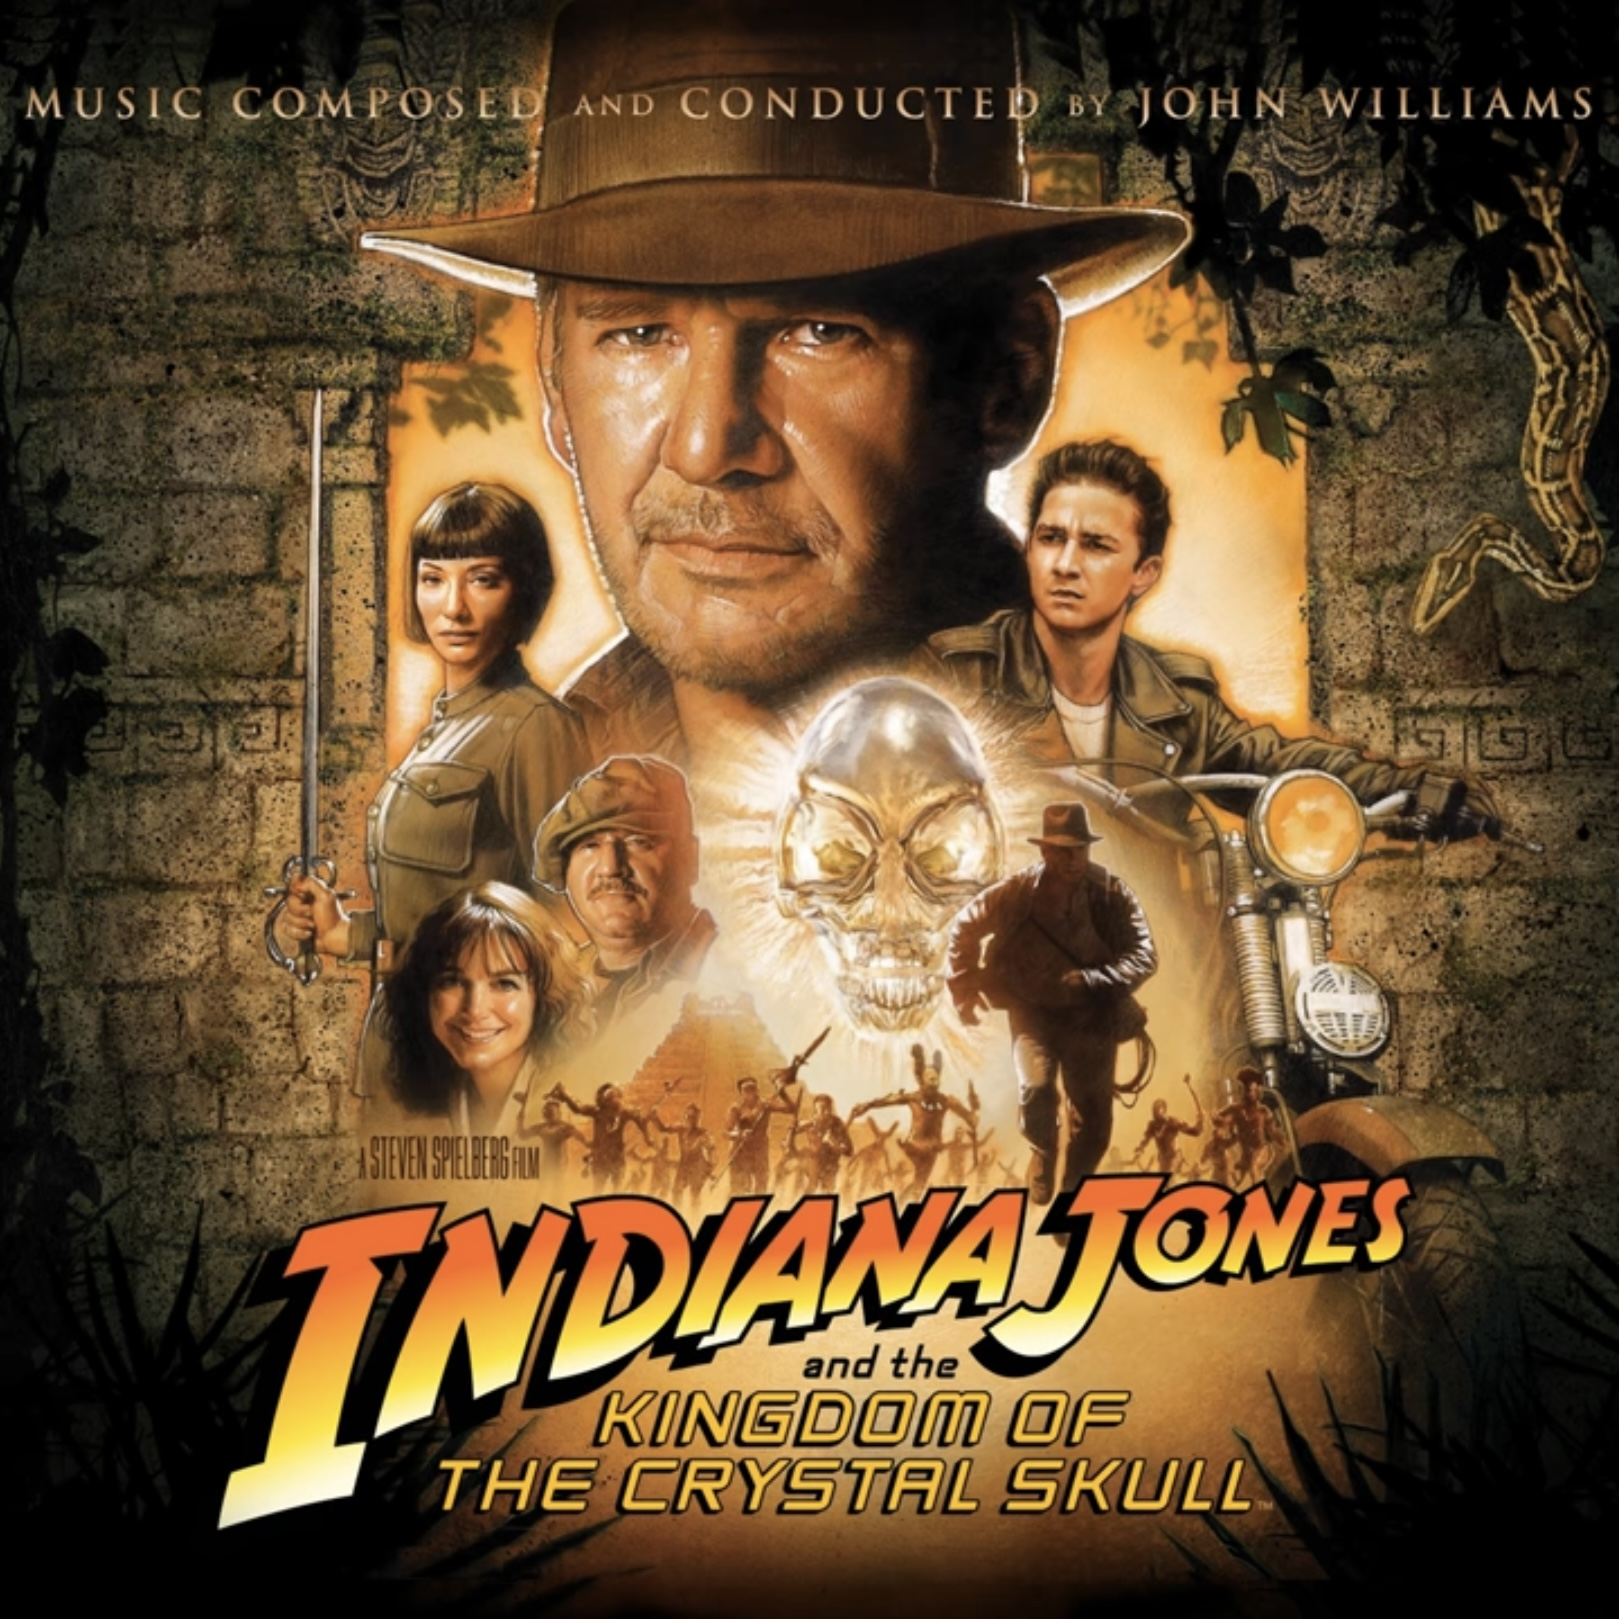 Indiana Jones and the Kingdom of the Crystal Skull (soundtrack)